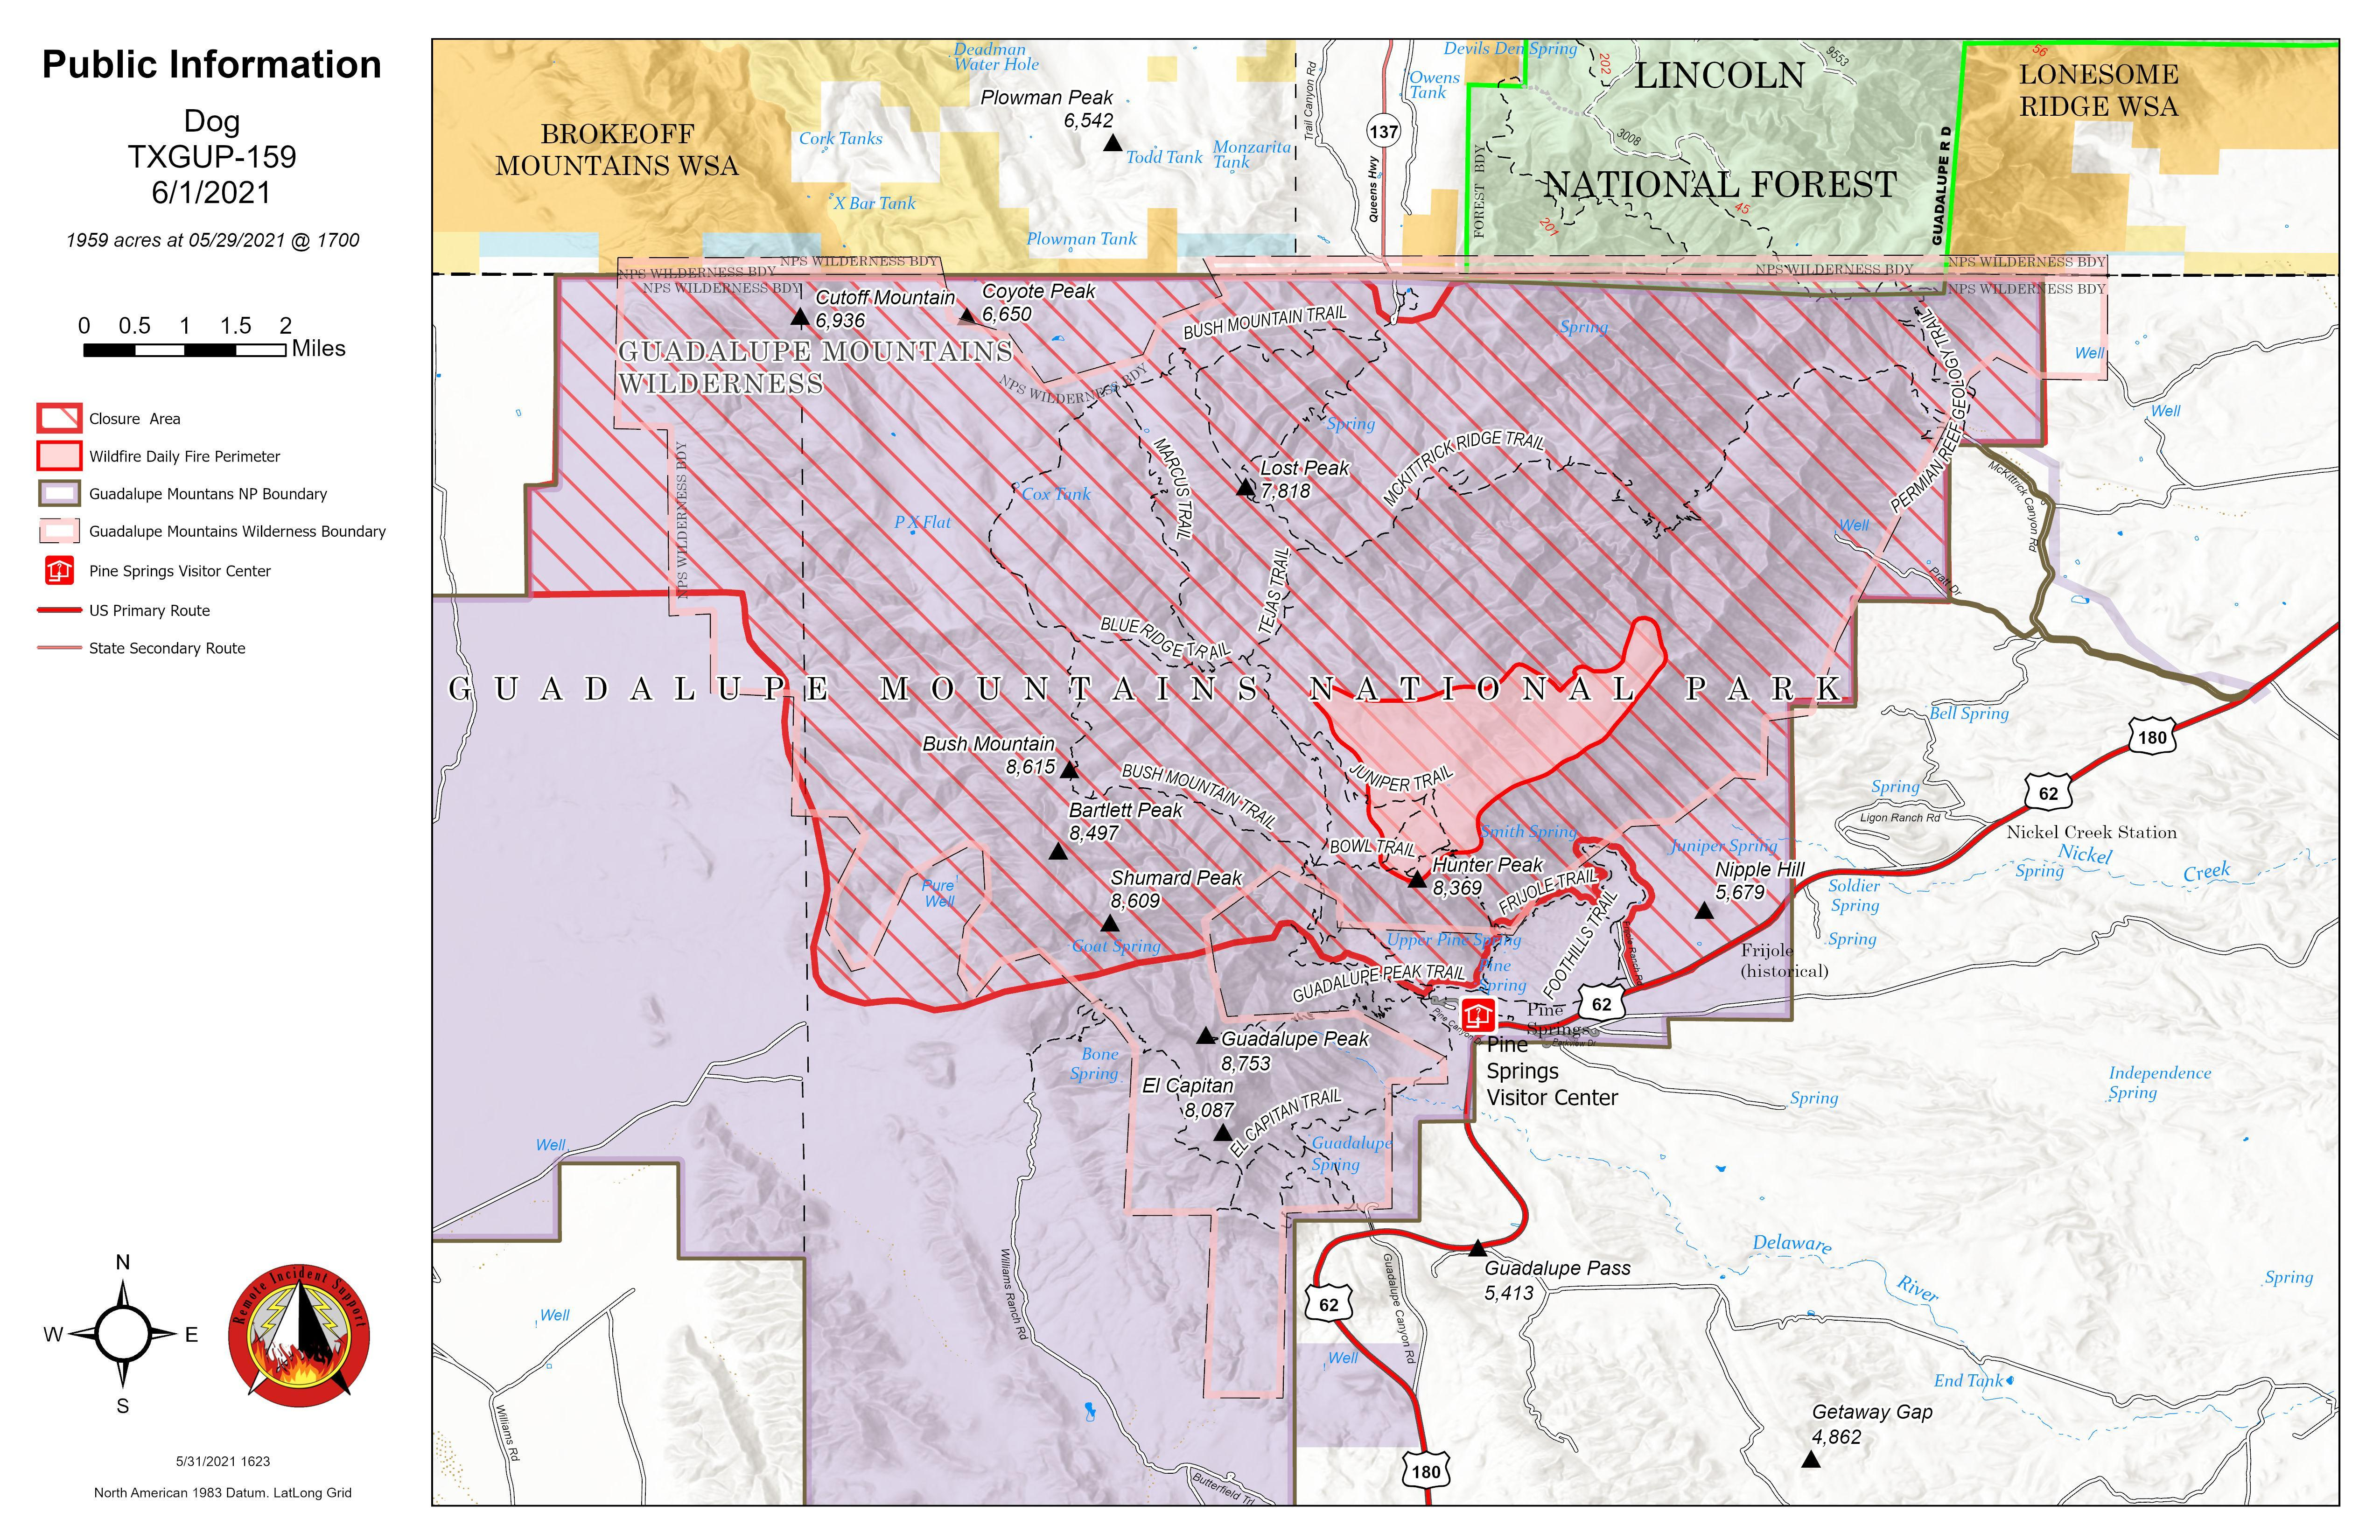 Dog Fie Map showing fire perimeter and closed area